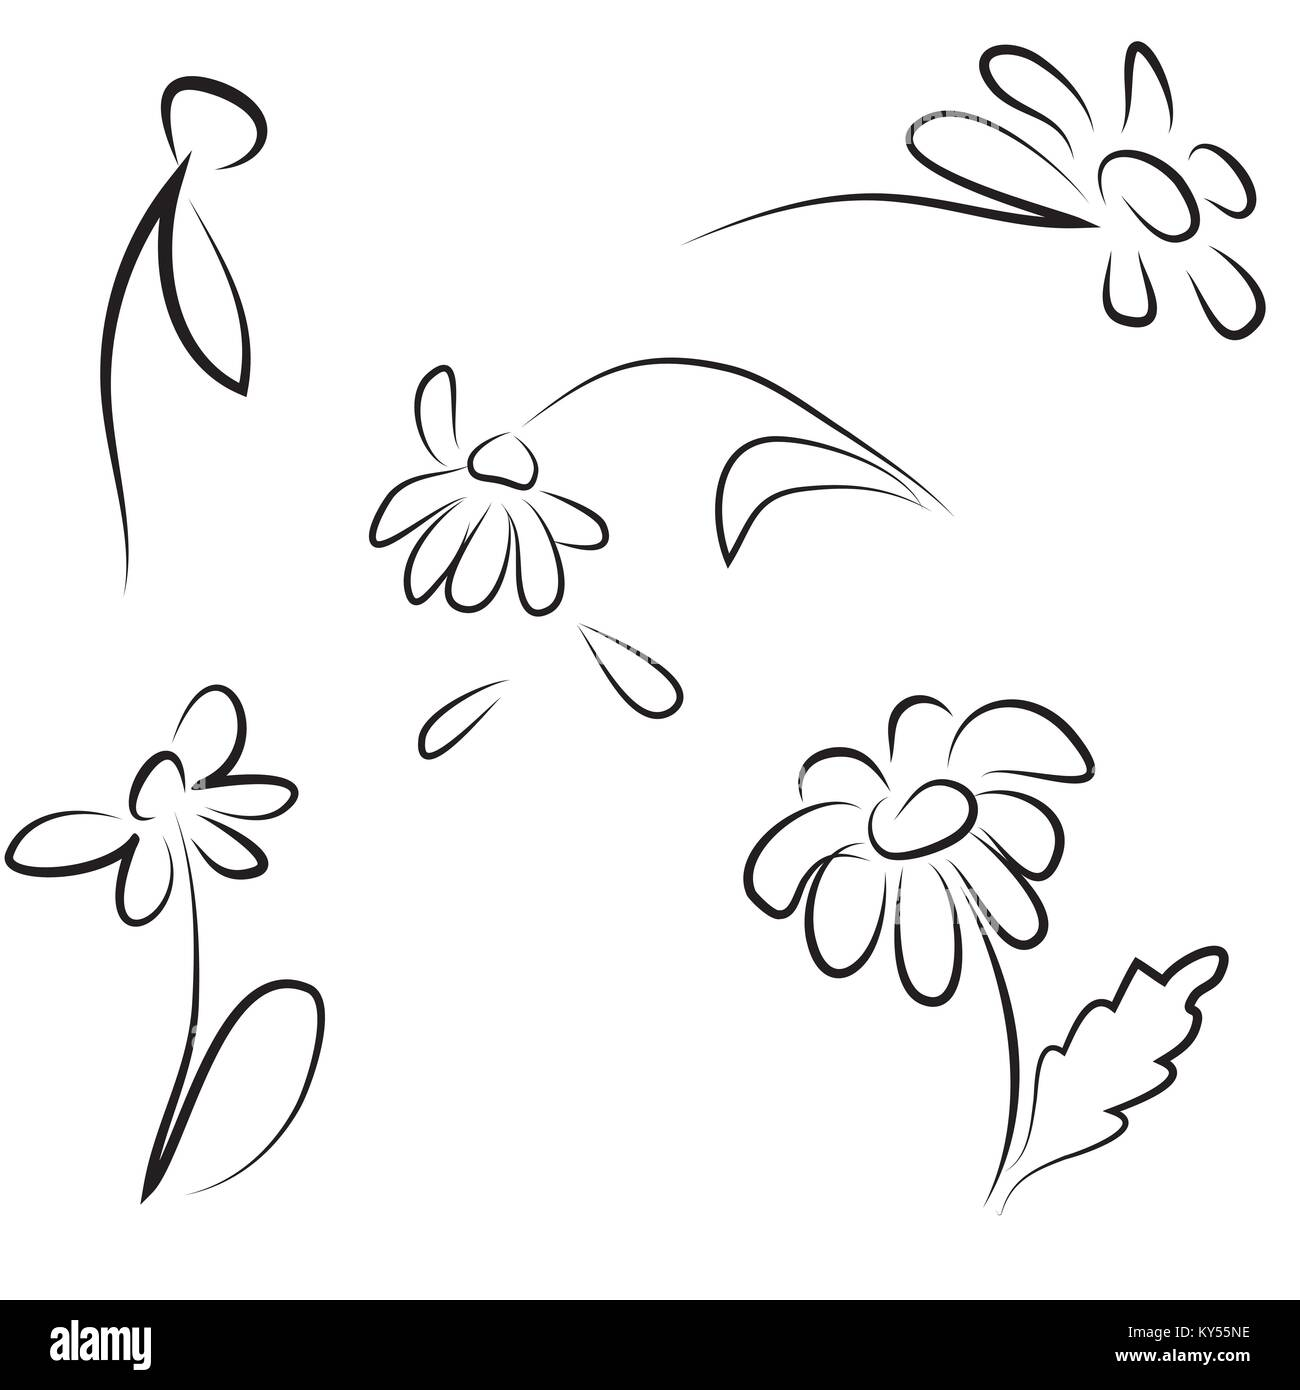 Hand contour drawing of daisies - Stock Image